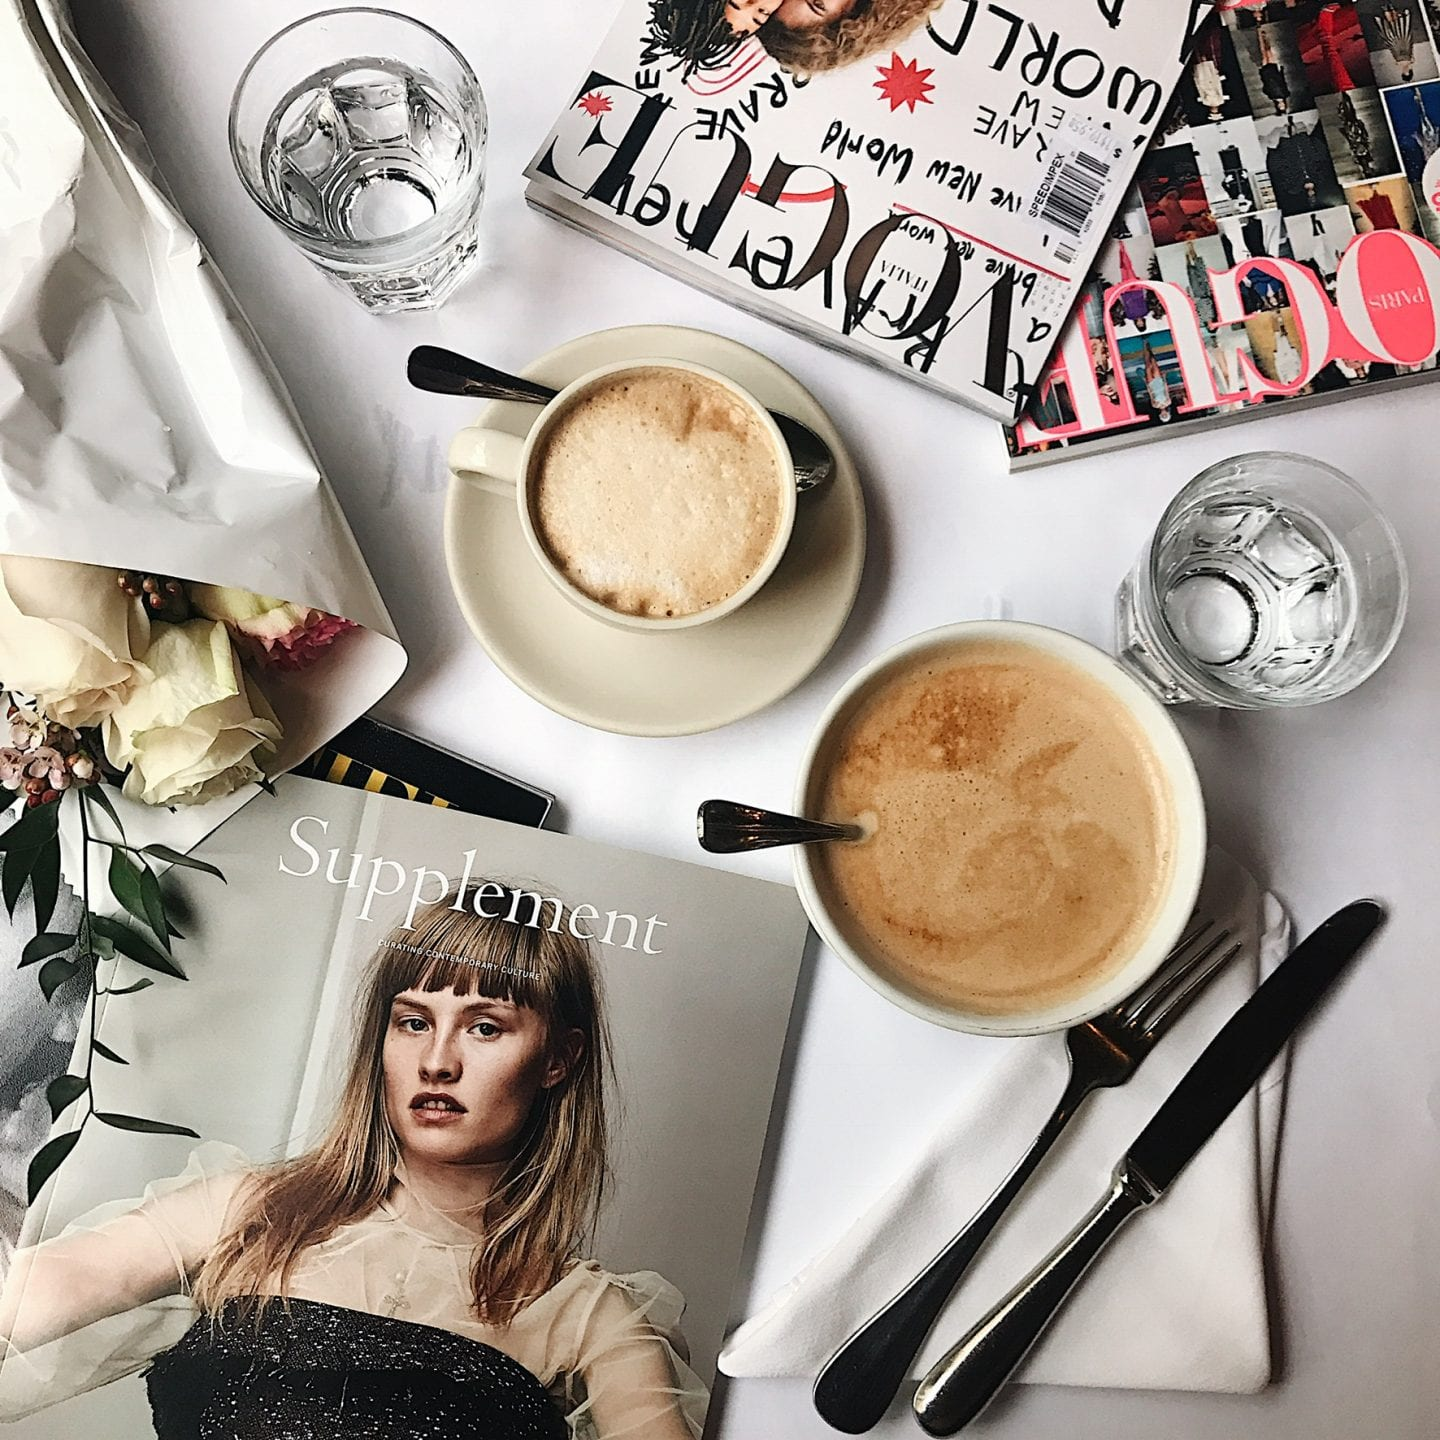 ditching starbucks habit | WHY I'M DITCHING MY STARBUCKS ADDICTION AND HOW YOU CAN TOO by popular San Francisco life and style blog, Just Add Glam: image of a table with magazines, flatware, and coffee cups on it.